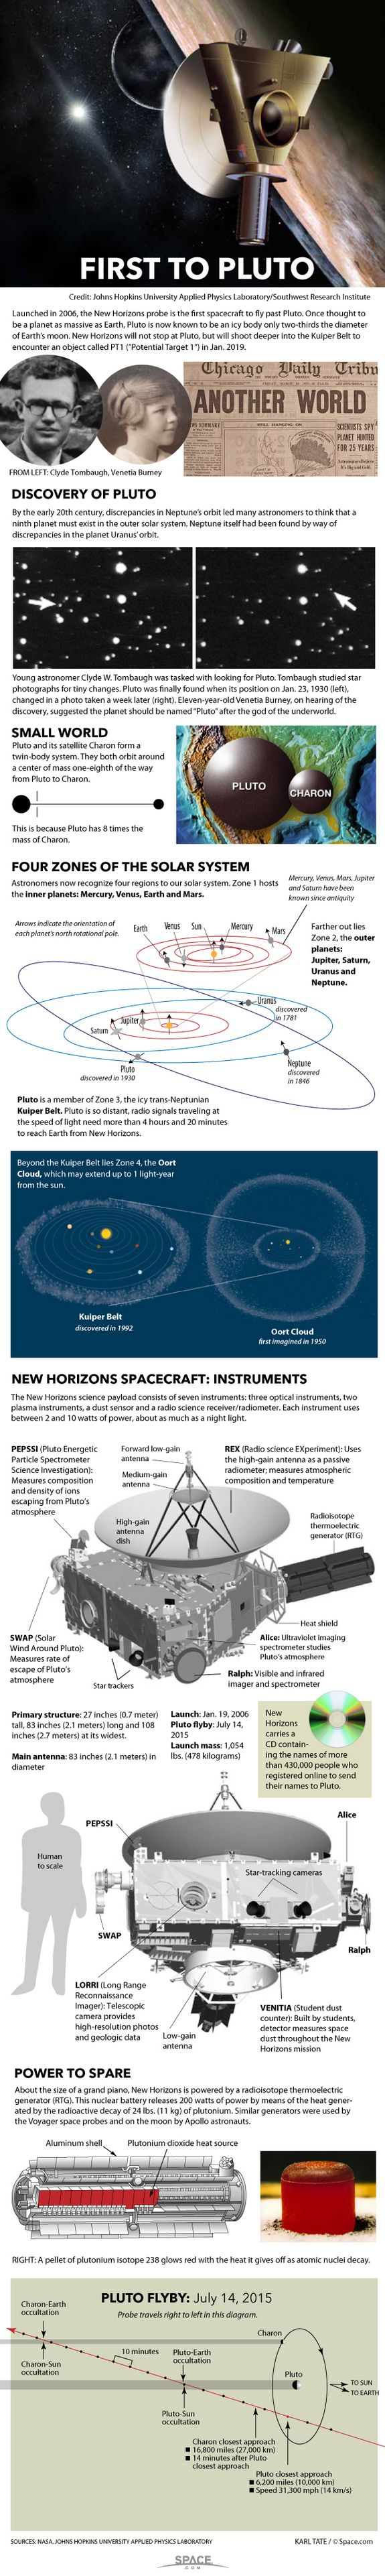 How NASA's New Horizons Mission to Pluto Works By Karl Tate | March 2015 Diagrams show New Horizons encounter with Pluto